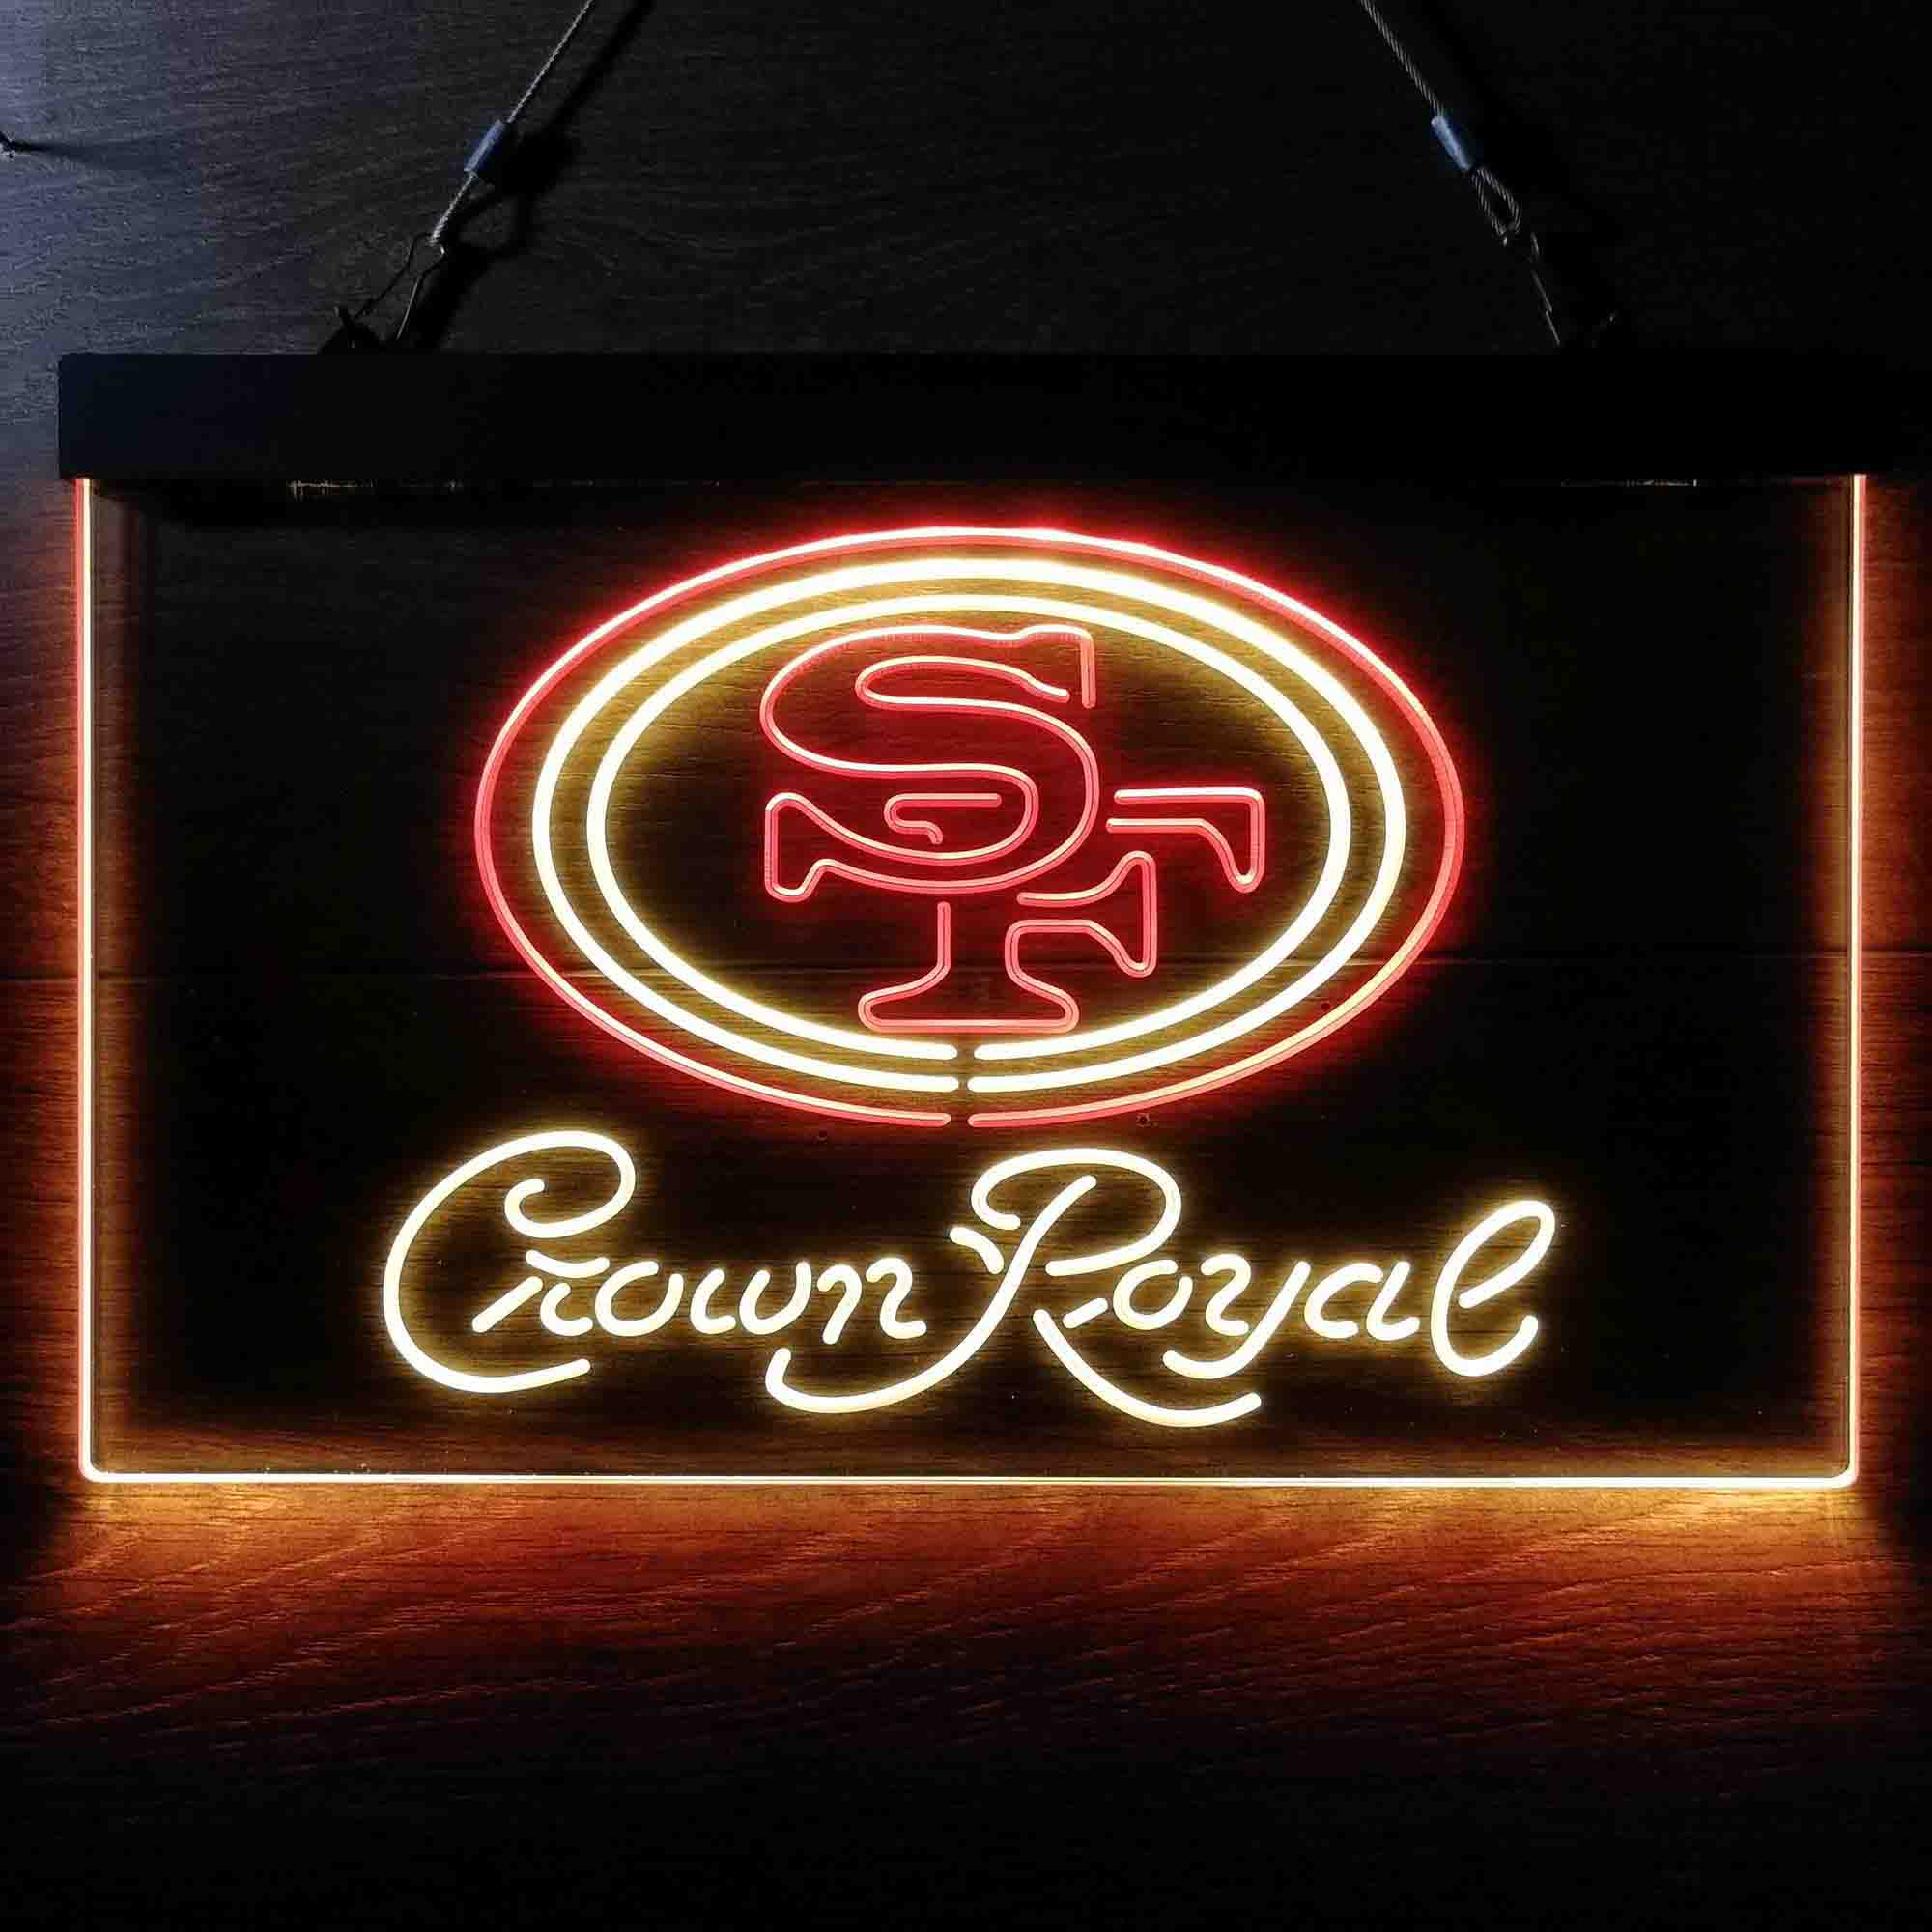 Crown Royal Bar San Francisco 49ers Est. 1946 Neon-Like LED Sign